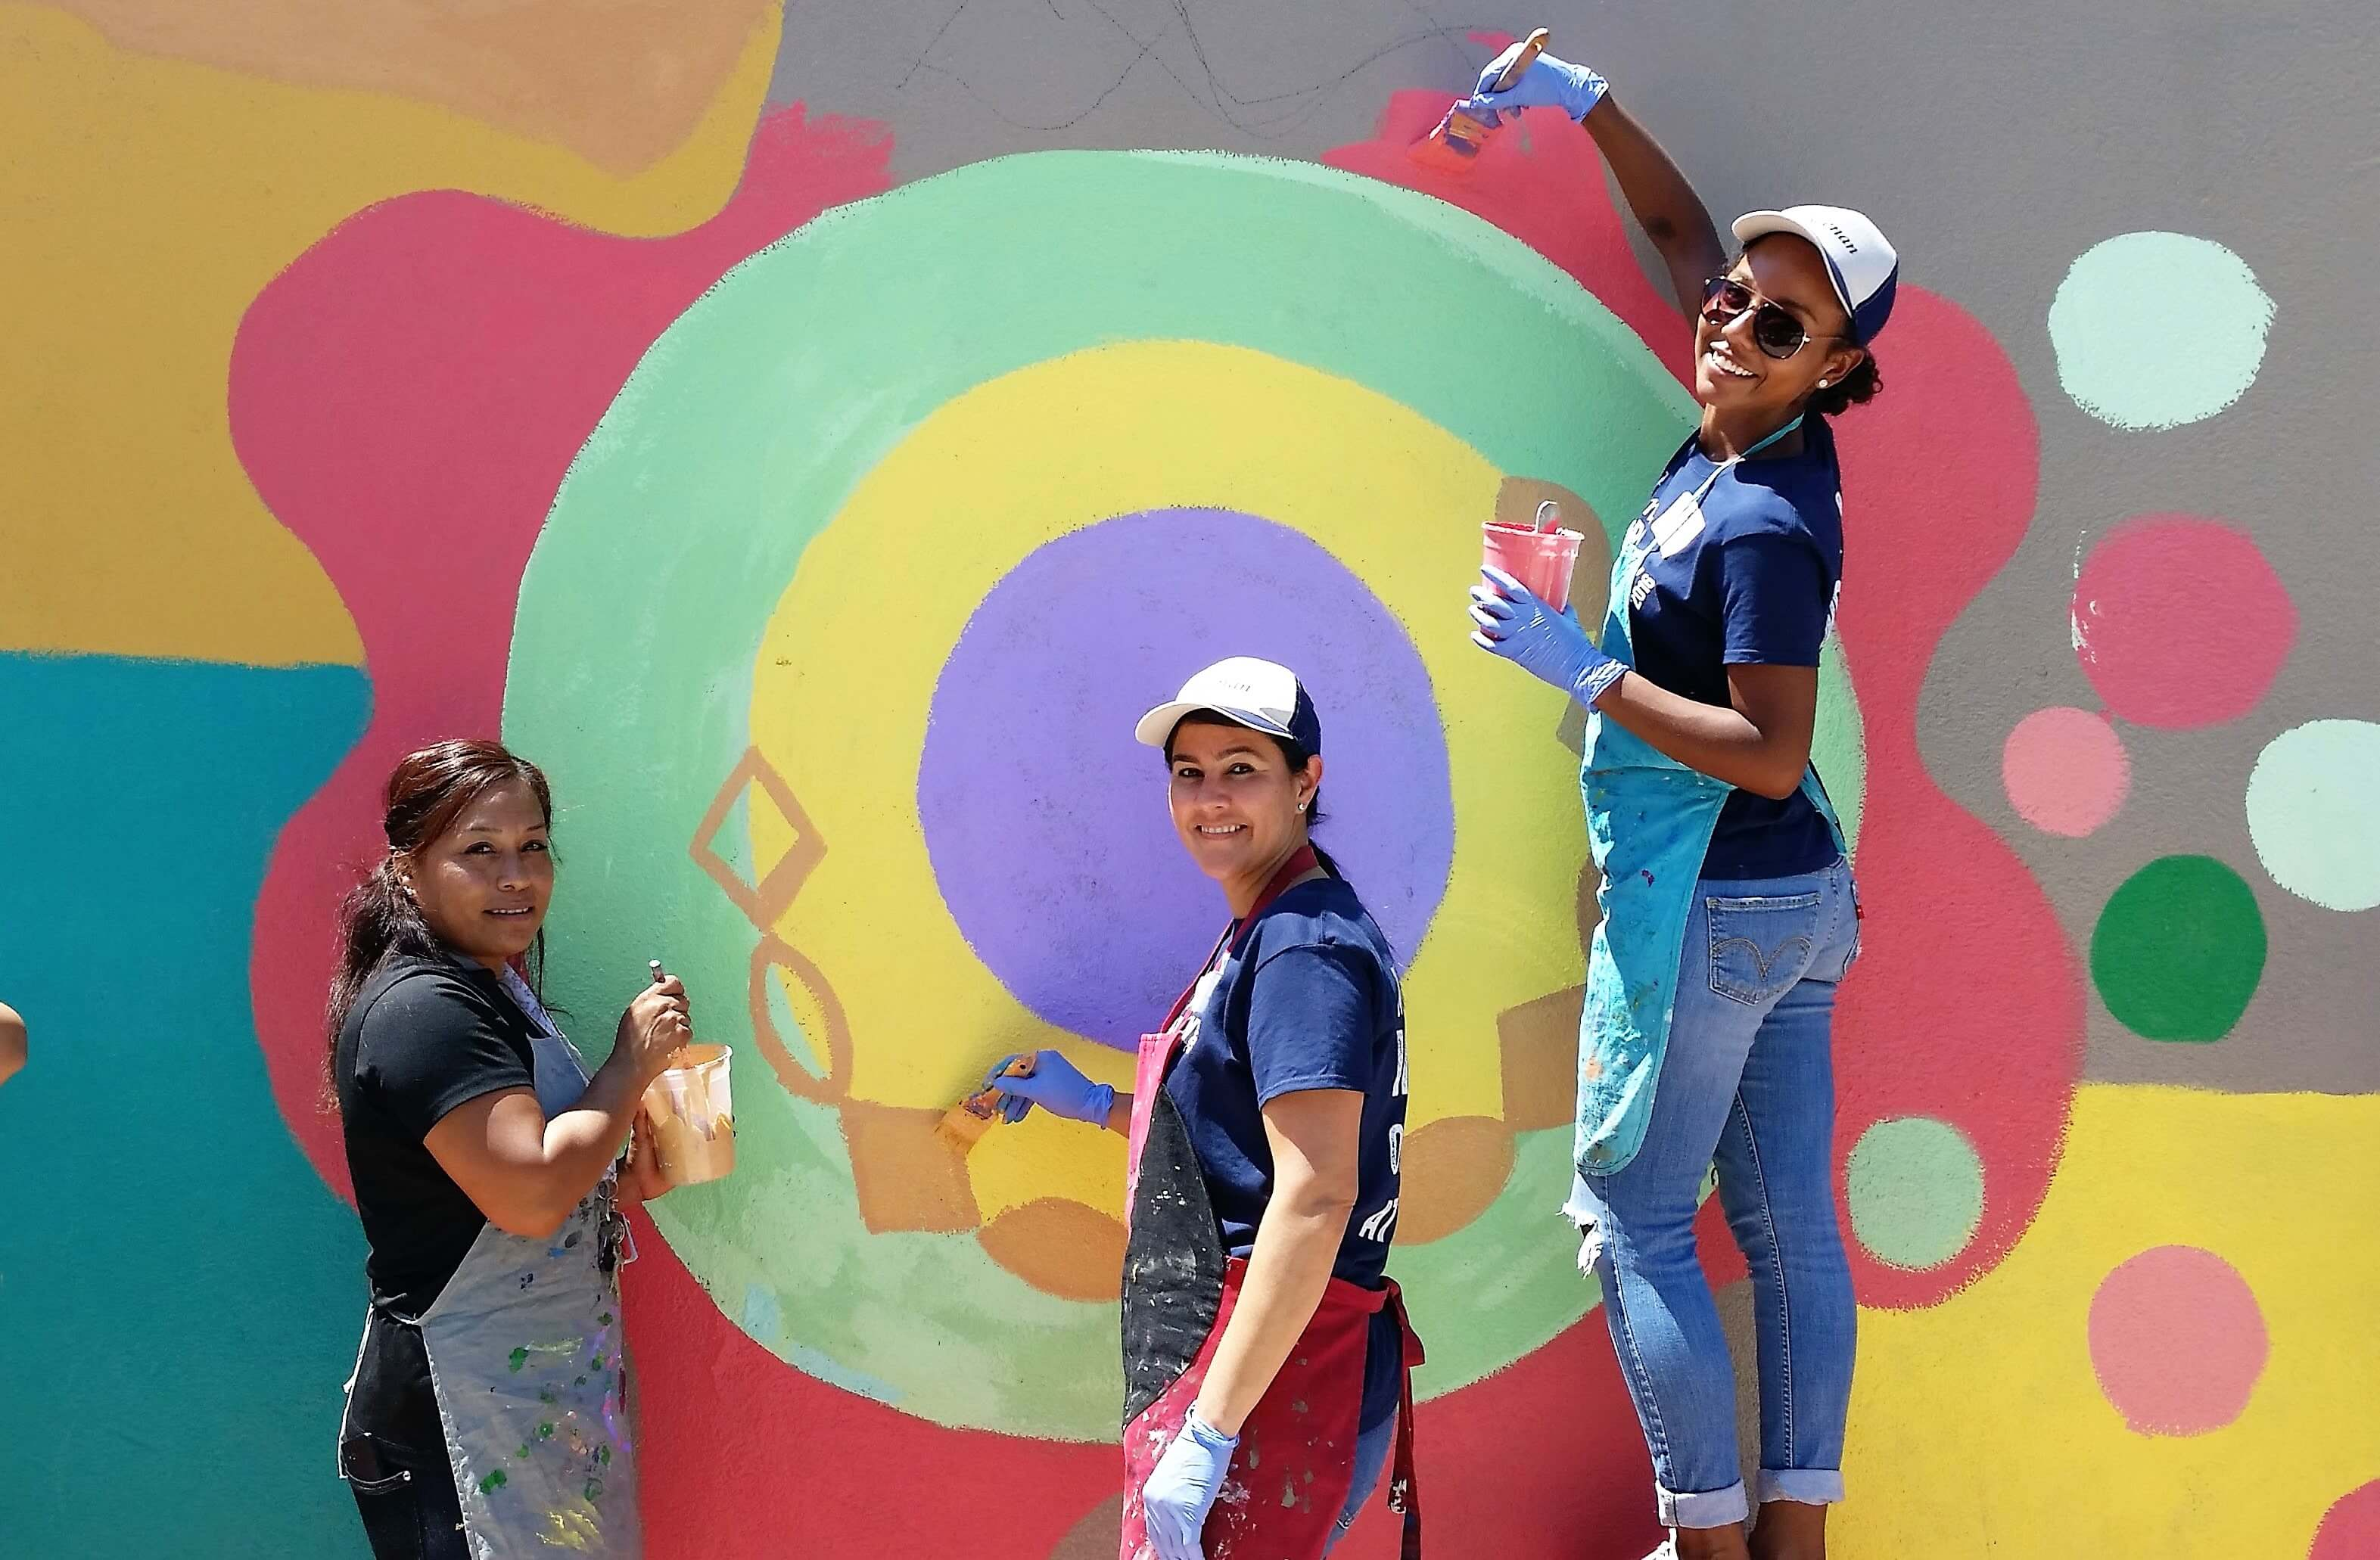 Circle Painting uses the circle theme and radial symmetry to create artworks